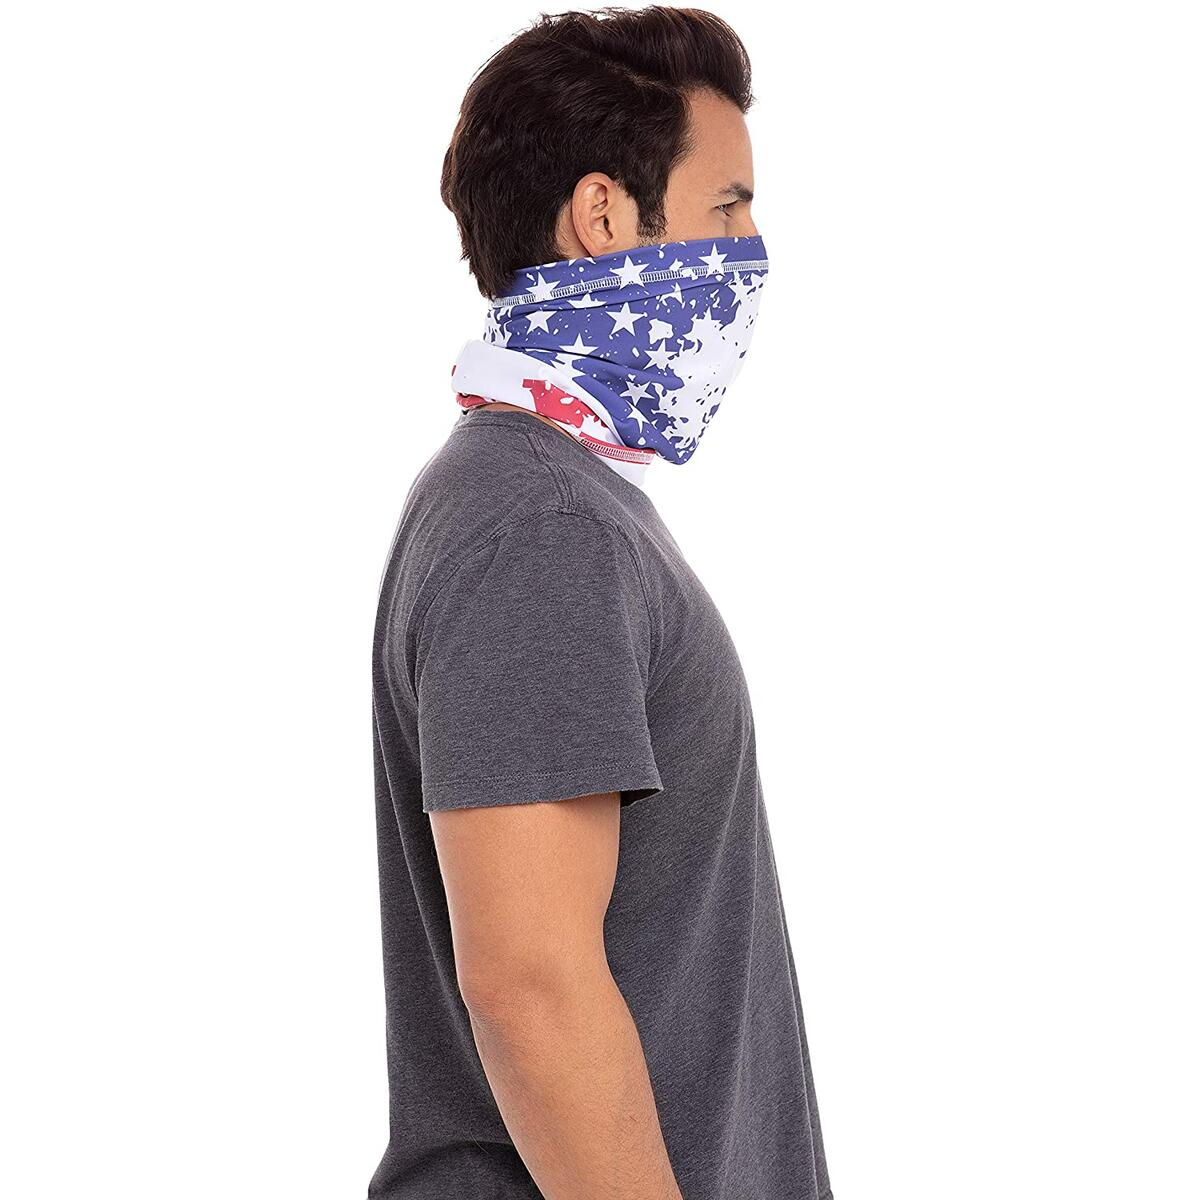 Legnar USA Neck Gaiter - Face Cloth Mask- Washable UV Protection Face Scarf- Neck & Headwear for Men Women and Teens